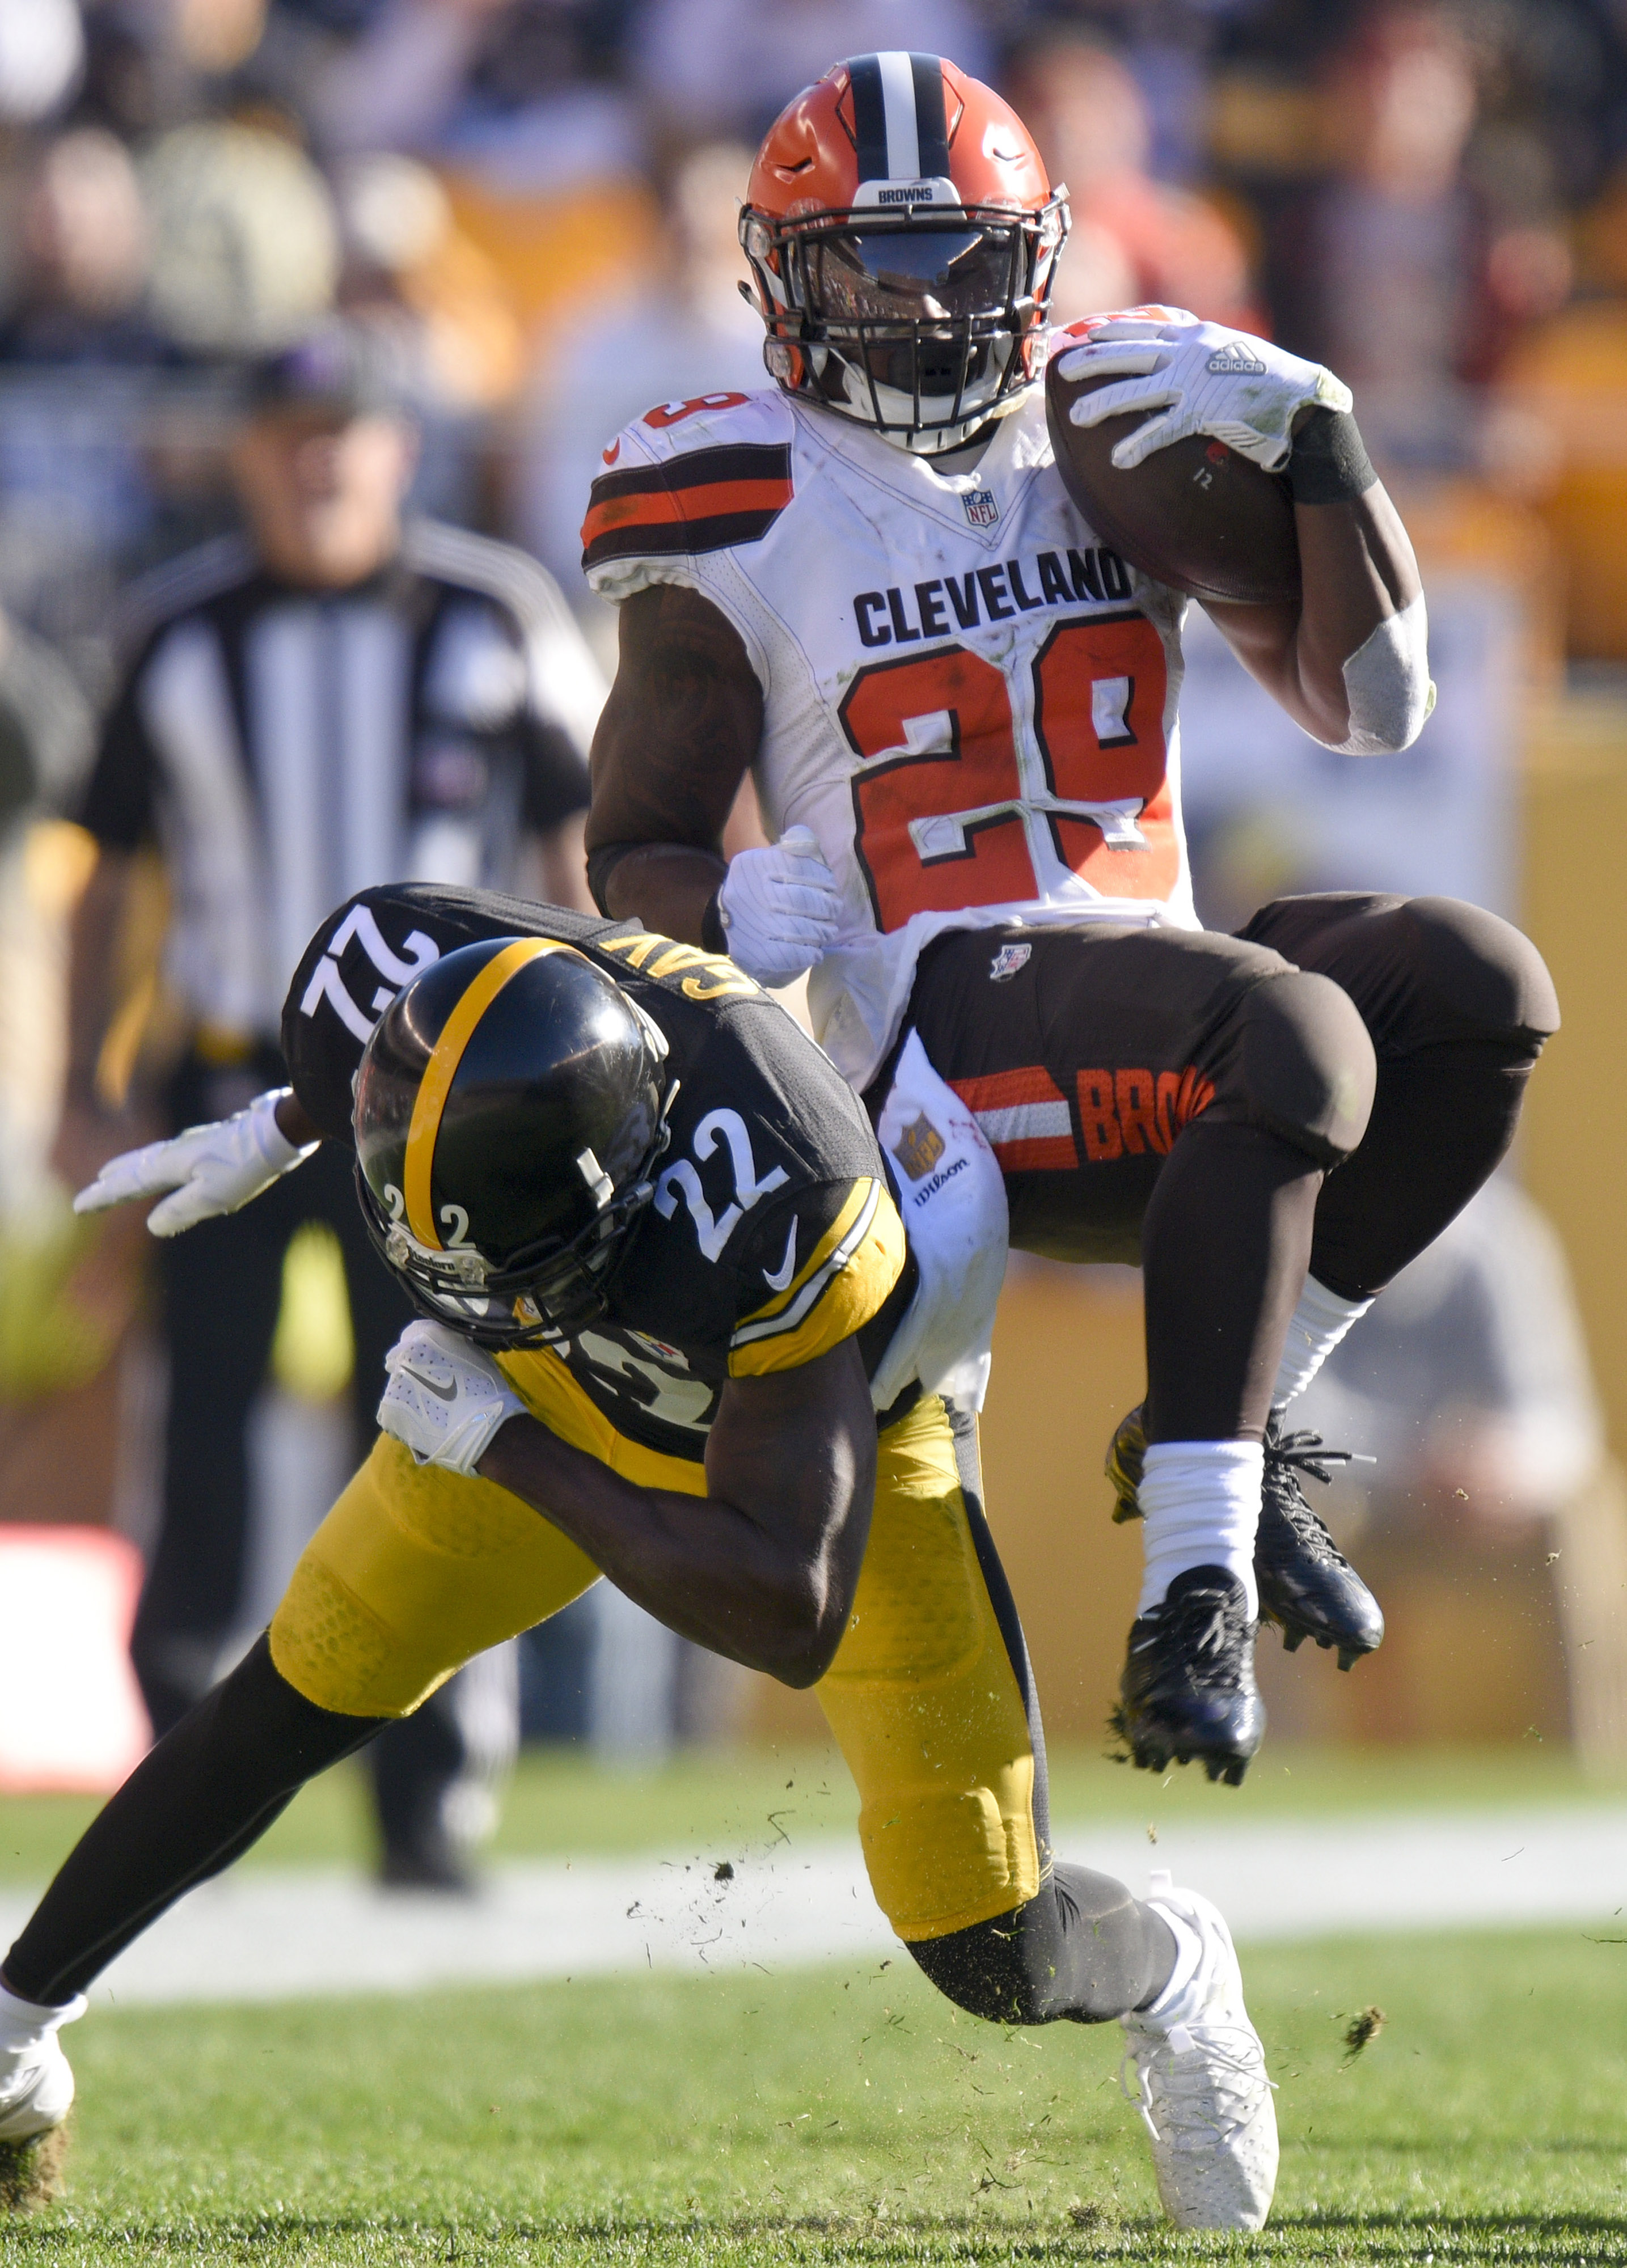 Cleveland Browns cornerback Tramon Williams (22) spins away from Pittsburgh Steelers cornerback William Gay (22) after being hit in the first half of an NFL football game, Sunday, Nov. 15, 2015, in Pittsburgh. (AP Photo/Don Wright)